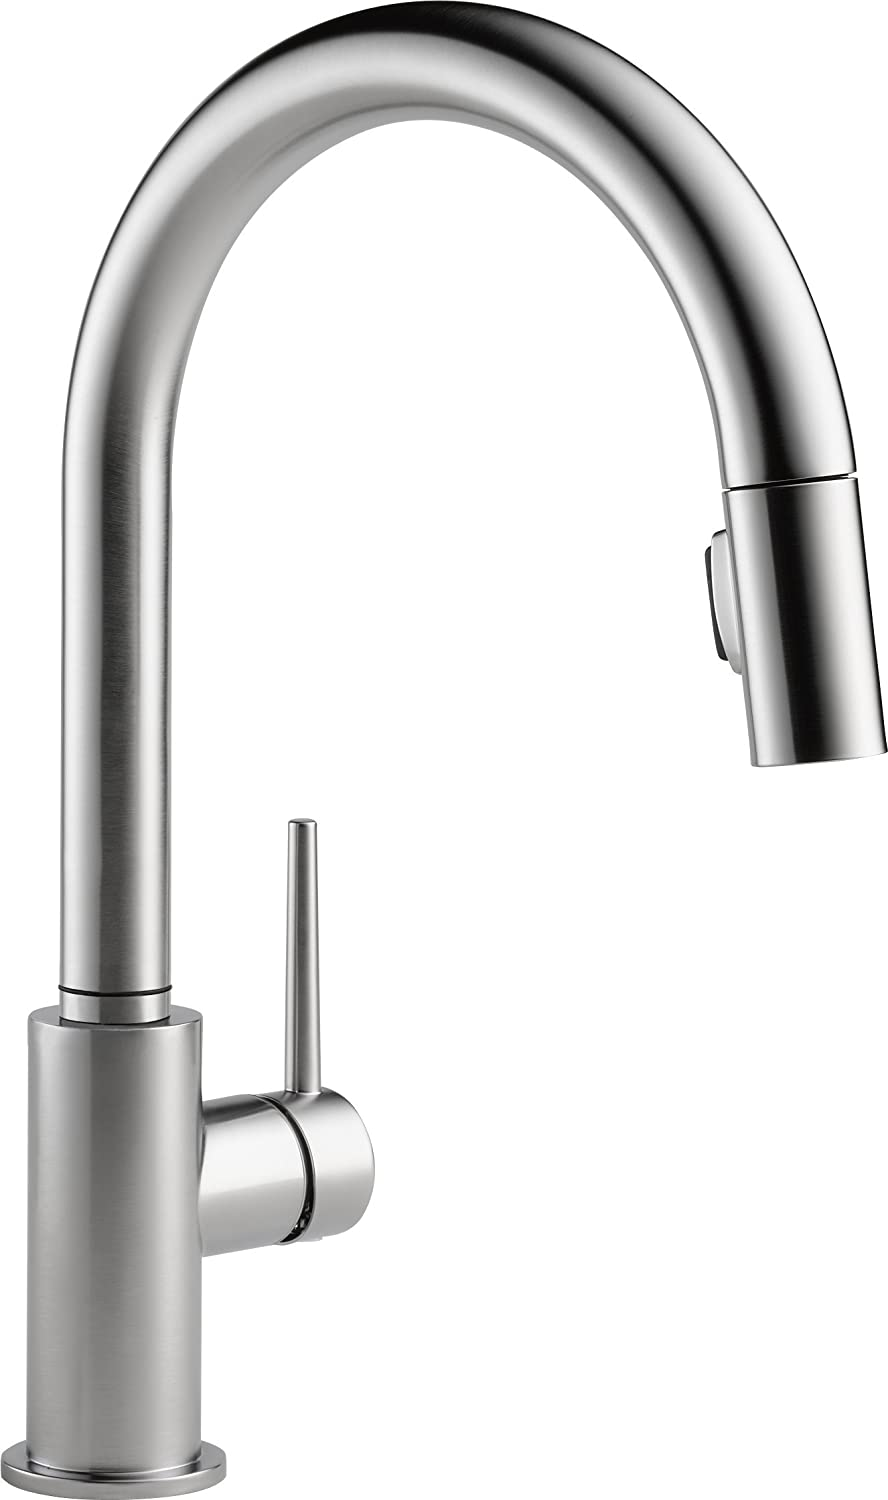 best pull down kitchen faucet grohe concetto kitchen faucet Delta best pull down kitchen faucet